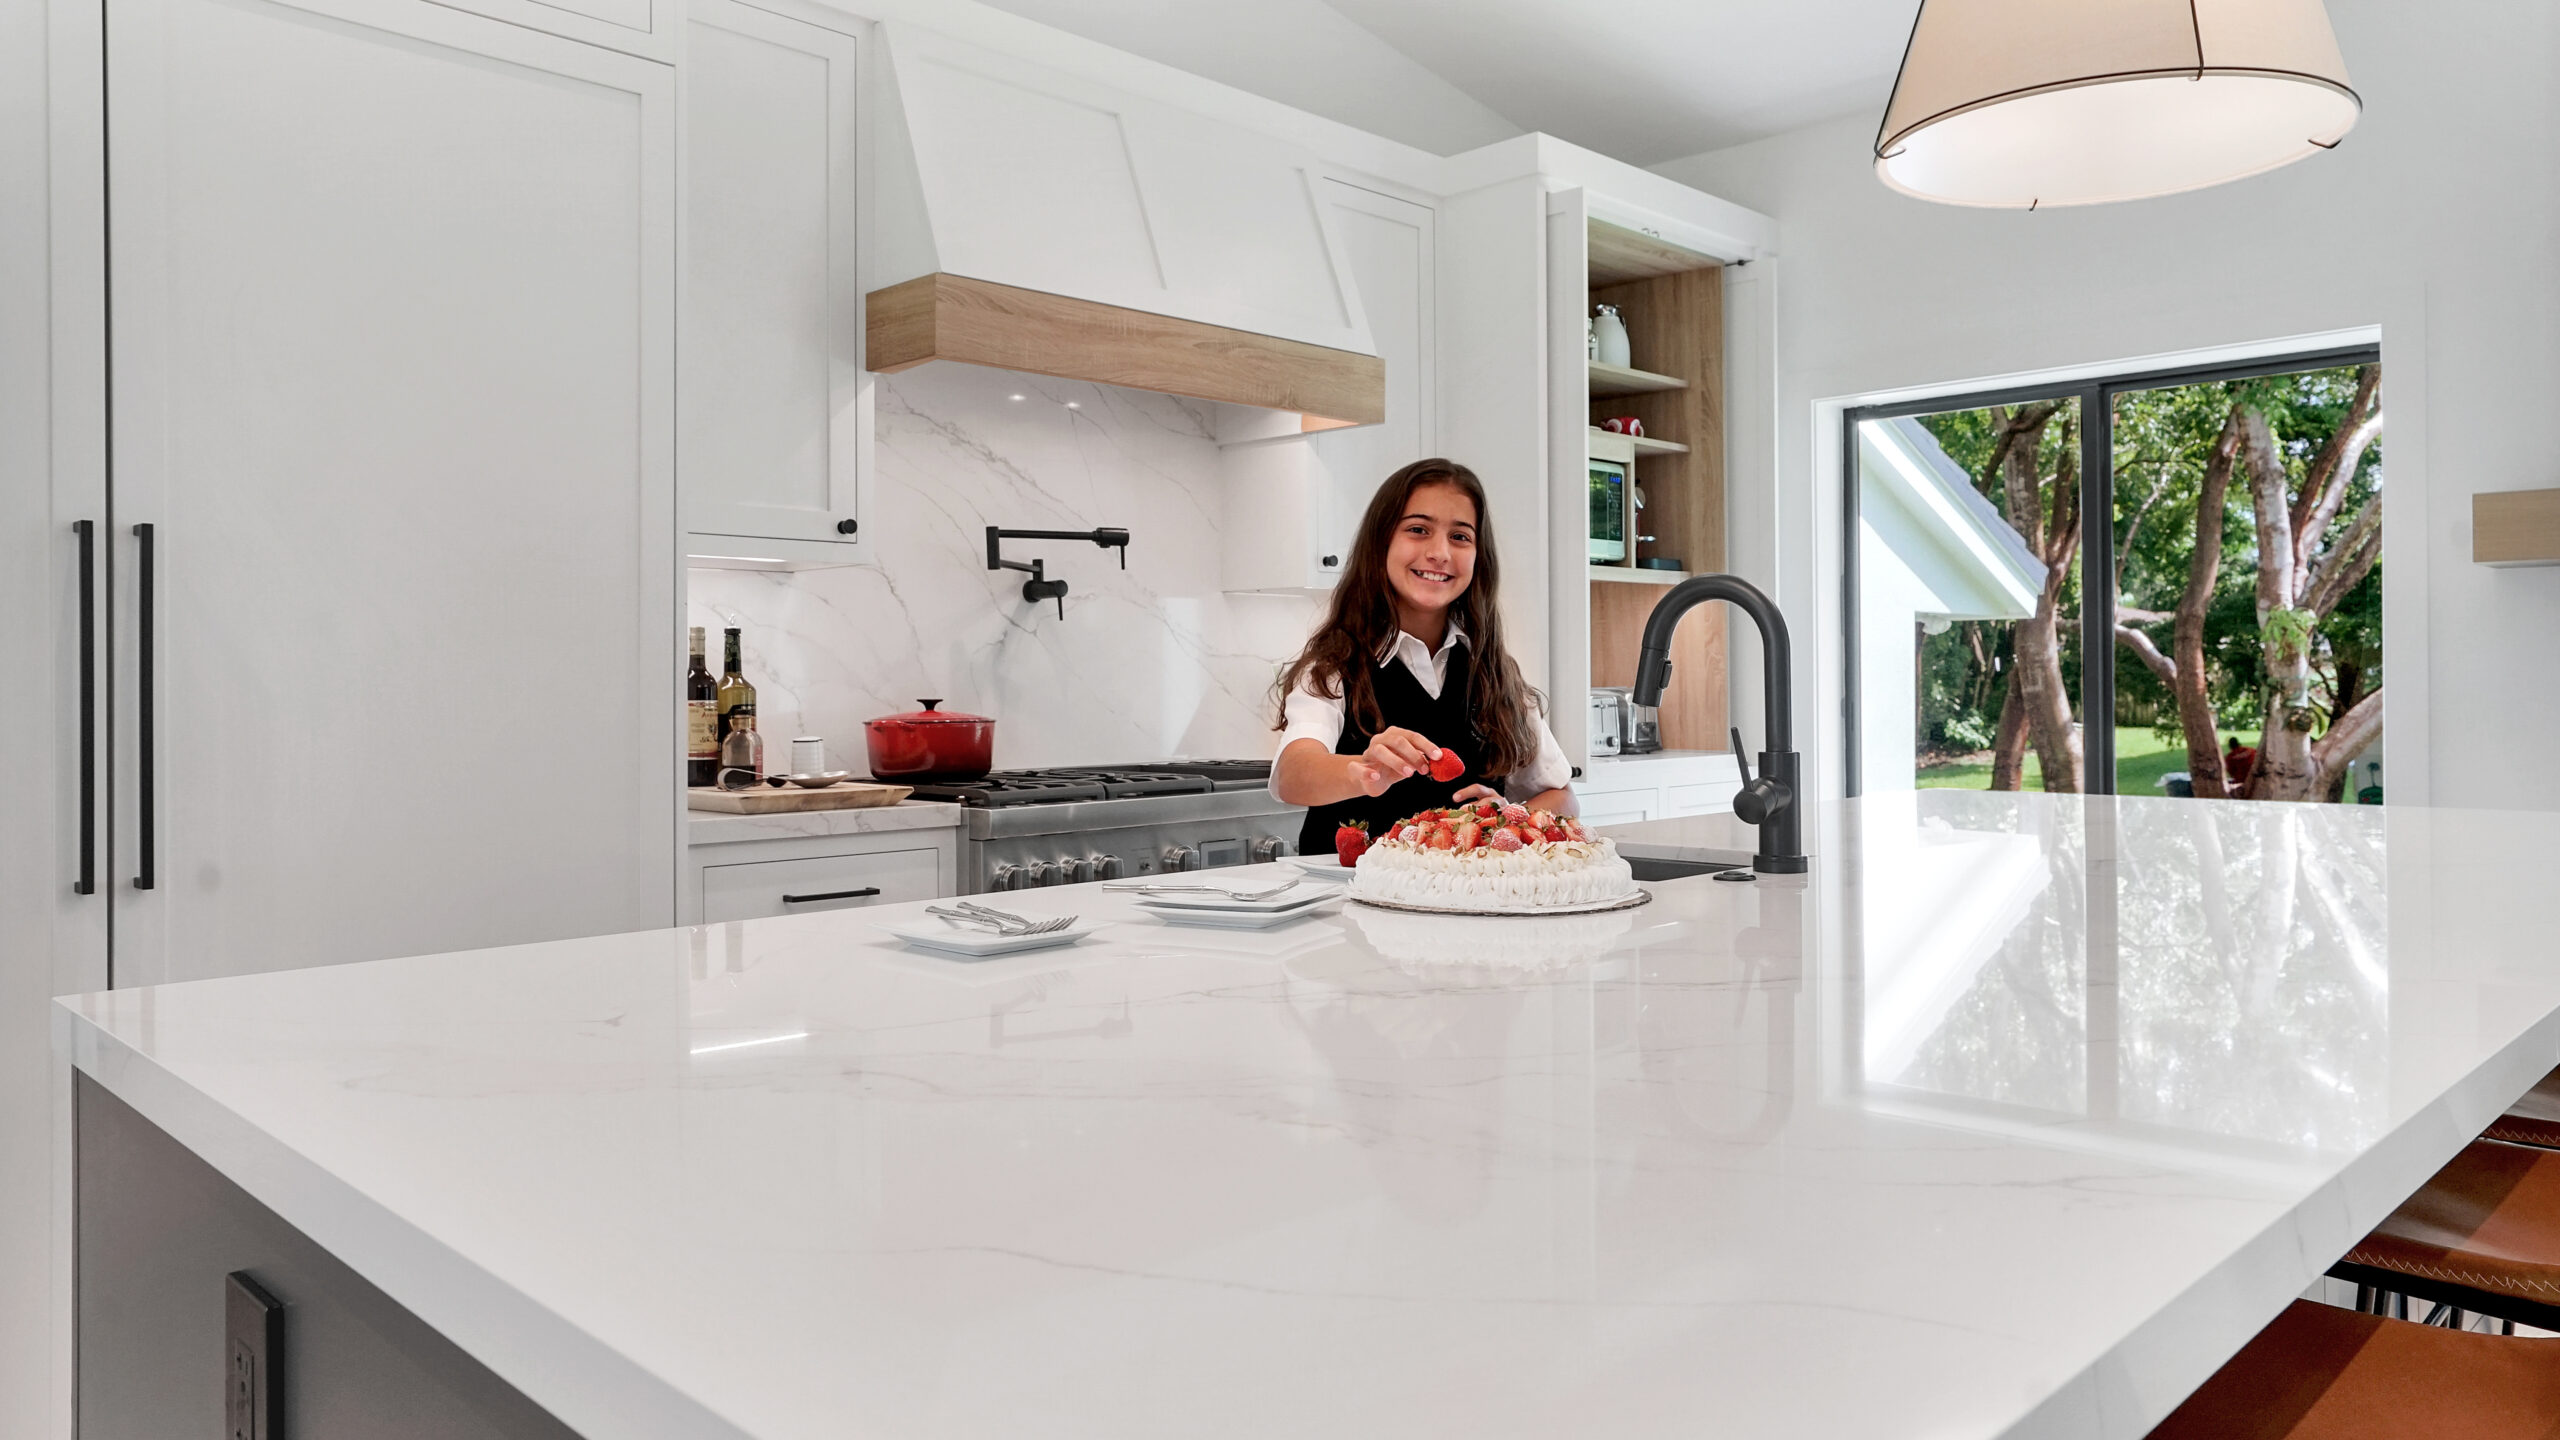 Kitchen Design in Coral Gables, Palmetto Bay, Key Largo, Miami, Kendall and Pinecrest, FL